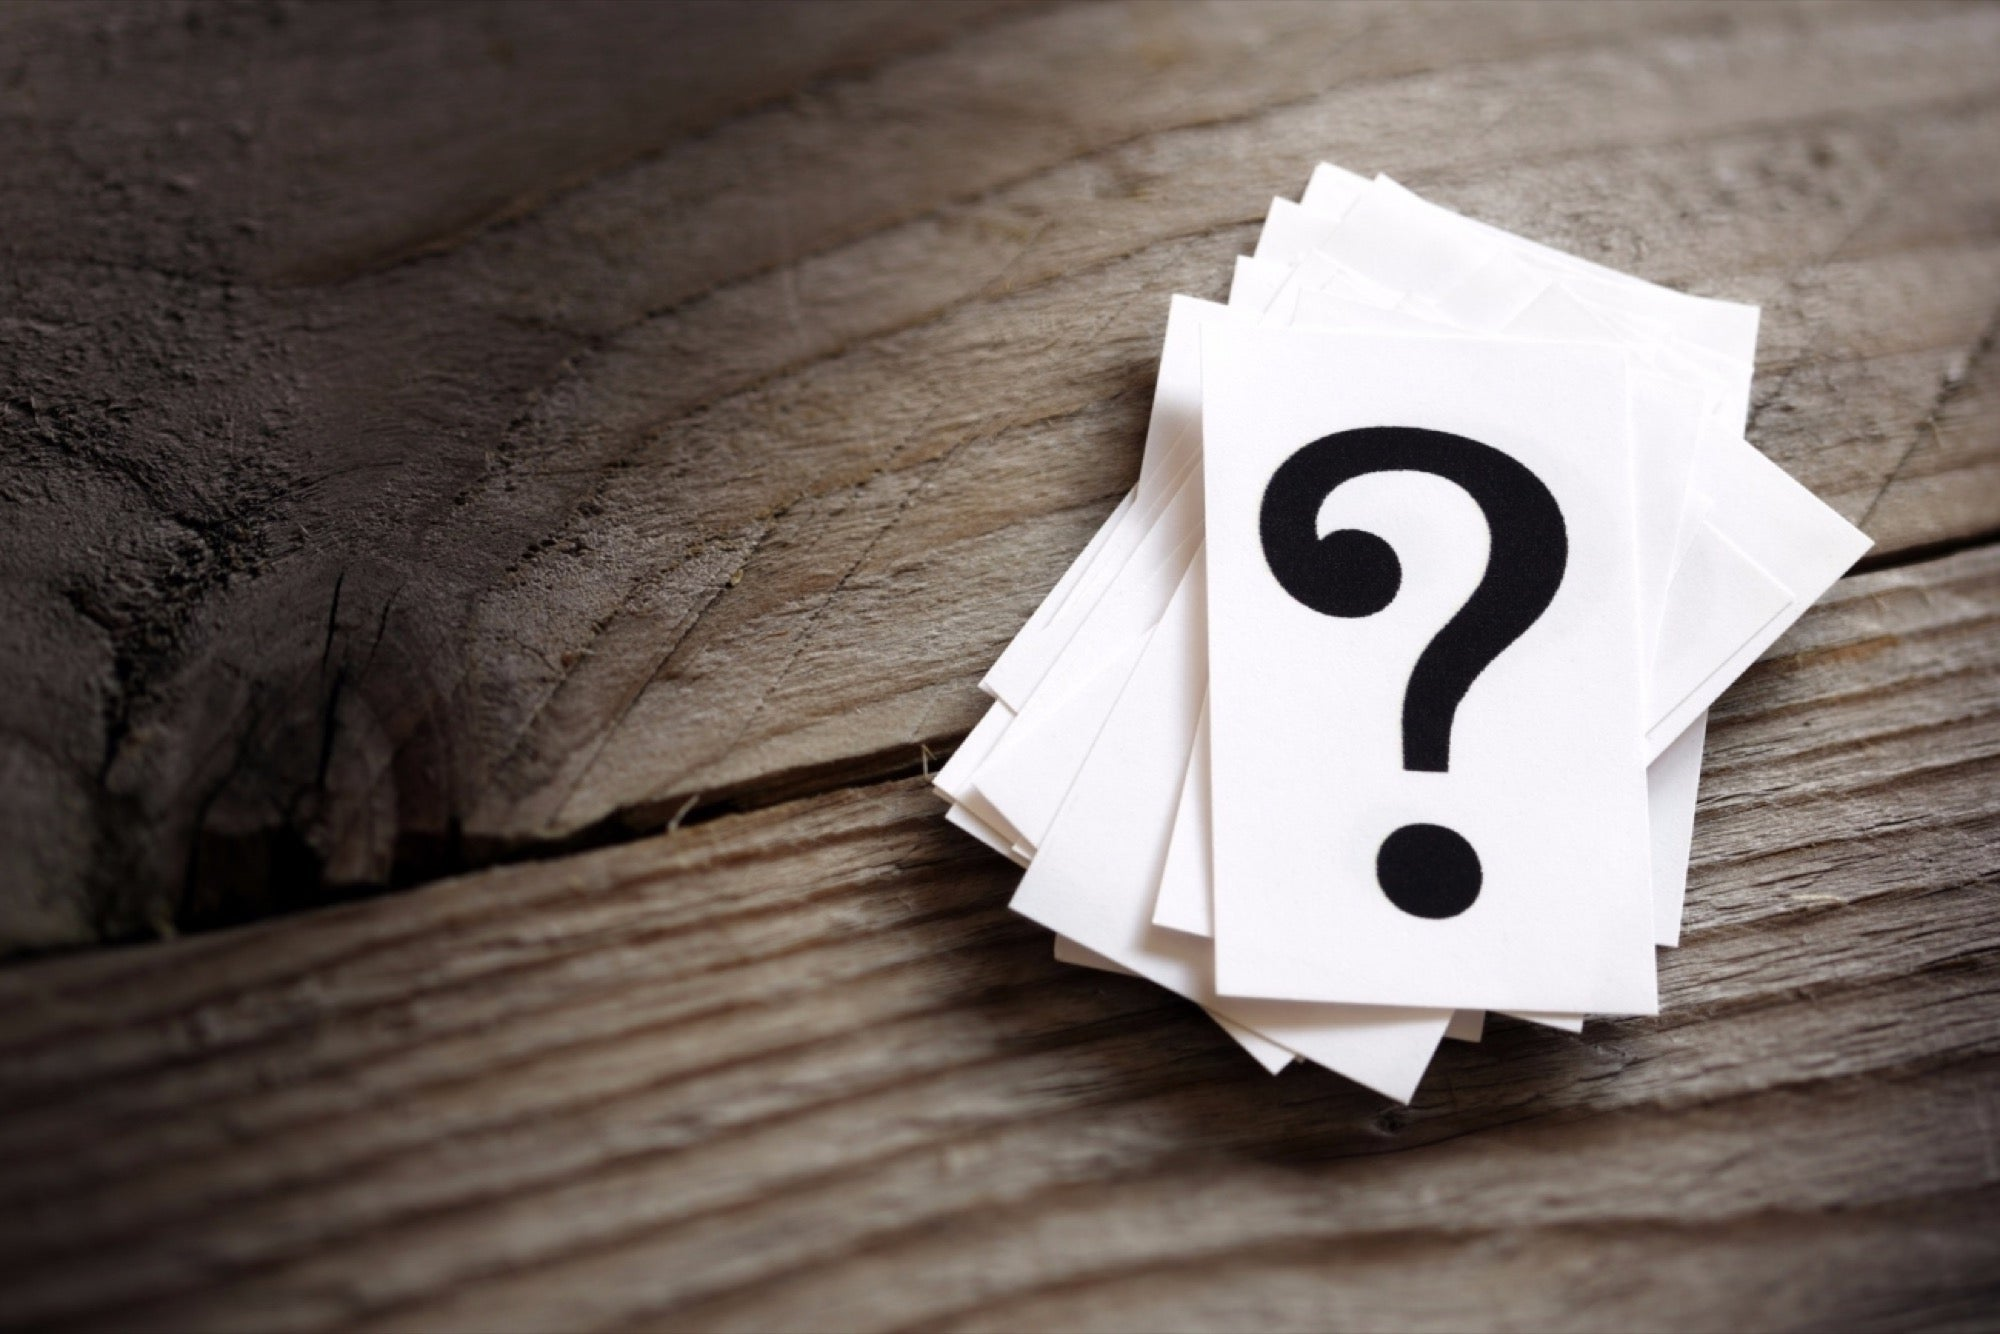 5 questions ask yourself if you are unhappy